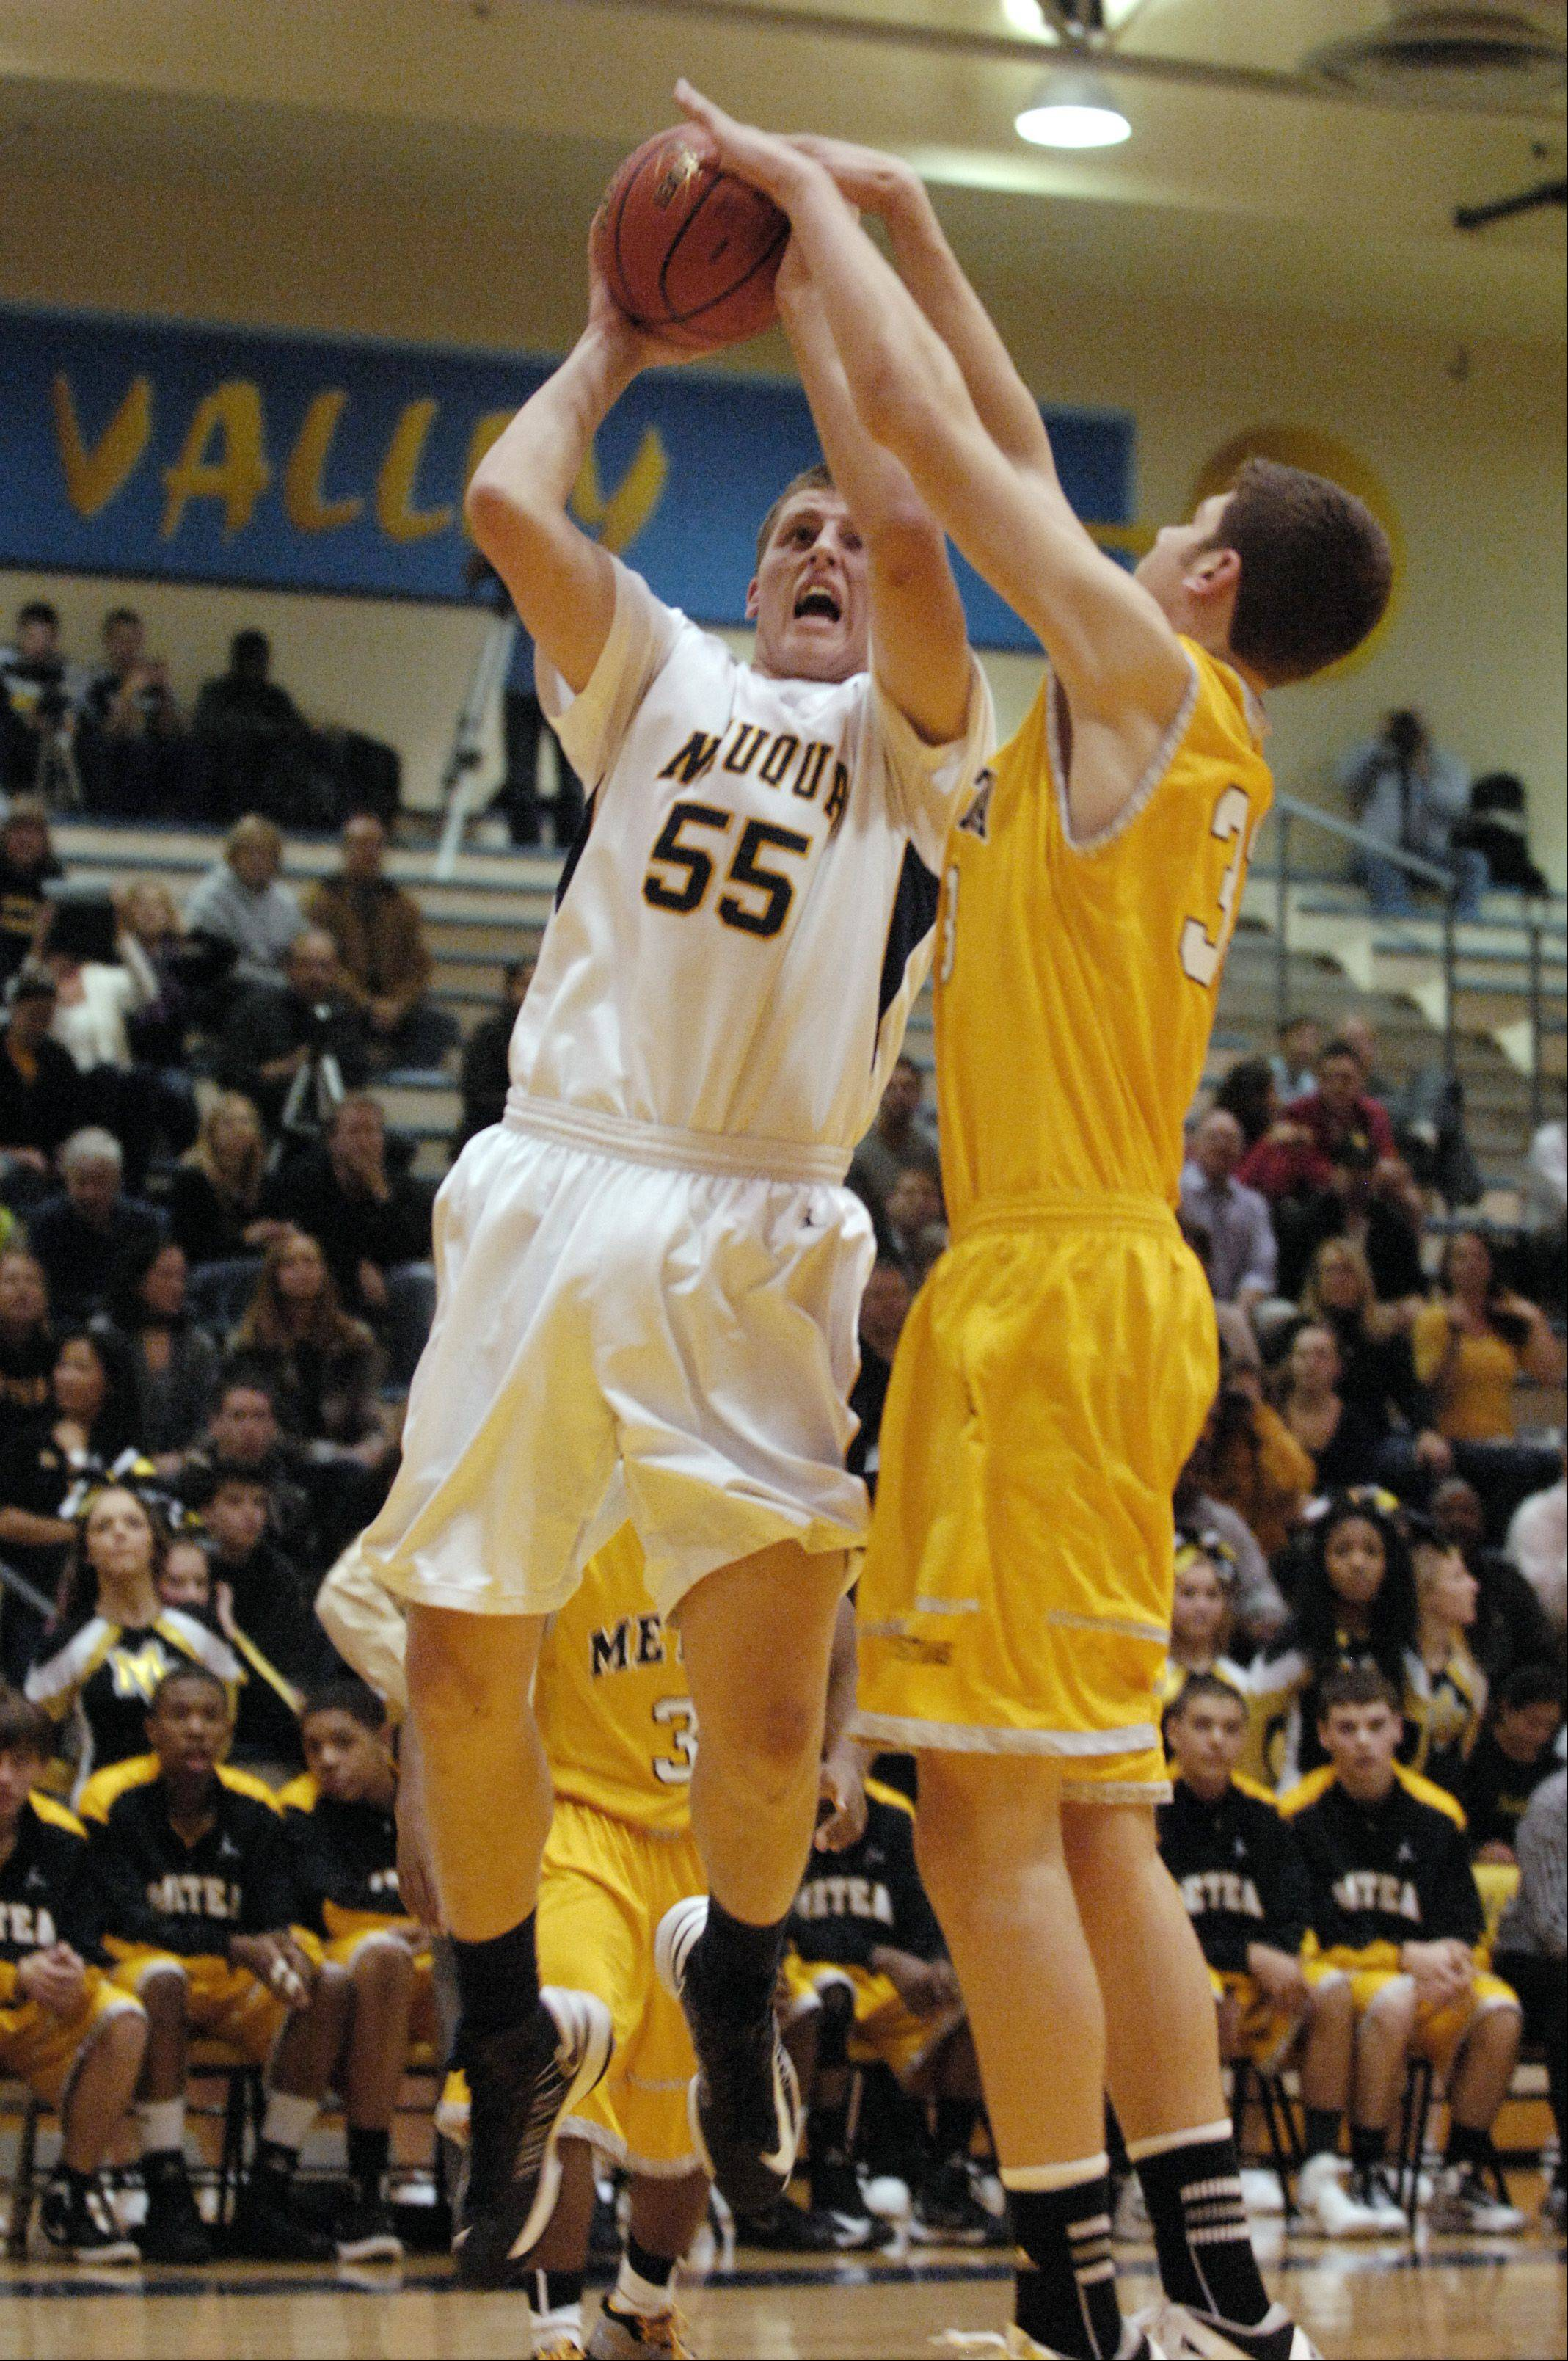 Pat Kenny of Neuqua Valley works at getting around Hayden Barnard of Metea Valley.